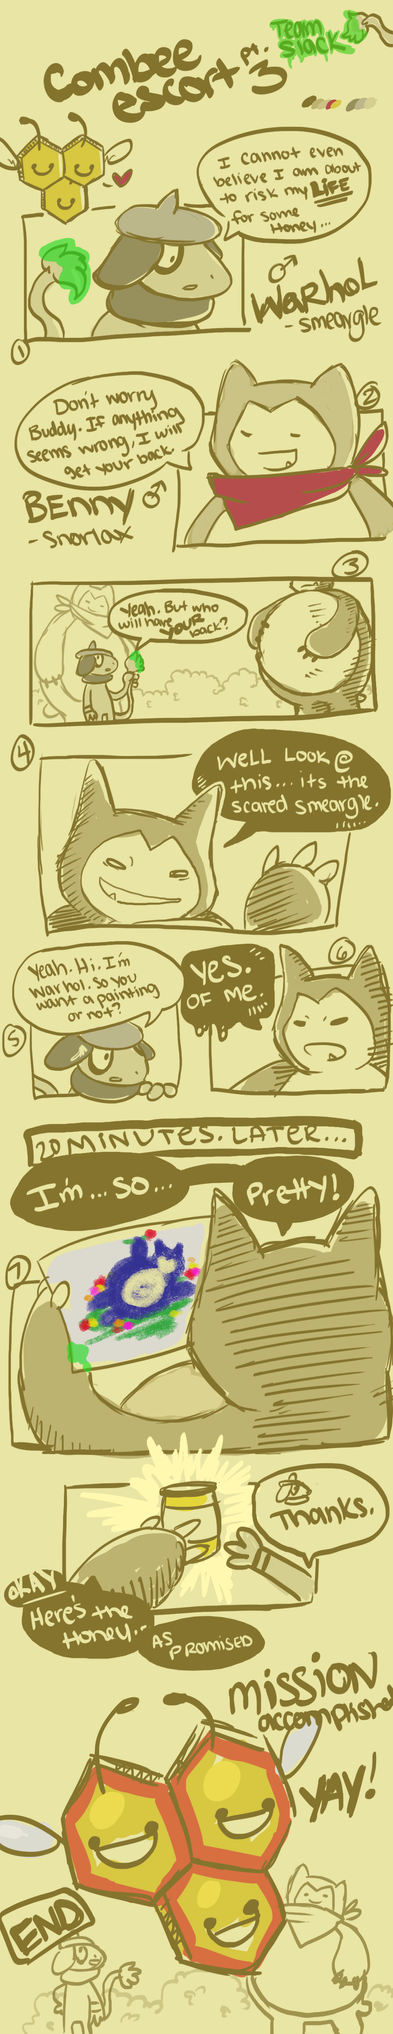 Team Slack- Combee Escort pg 3 by tabby-like-a-cat